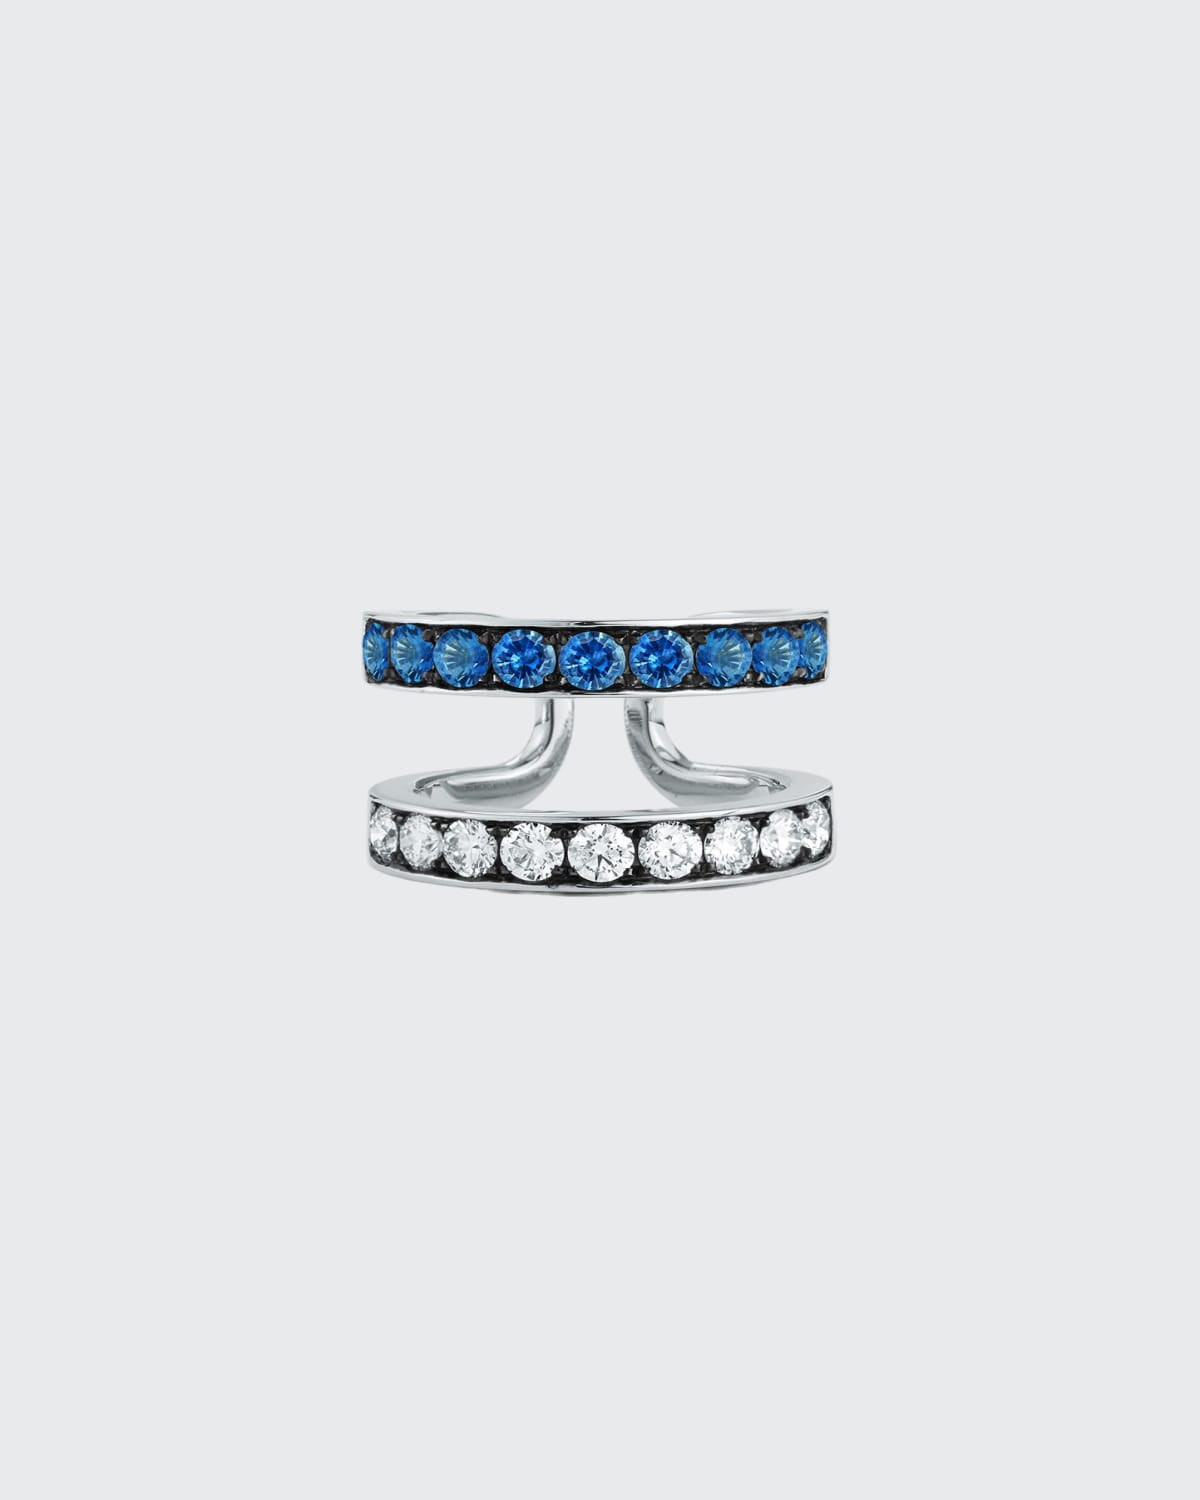 White Gold Prive Double Band Ring w/ Blackened Diamond And Blues Sapphires